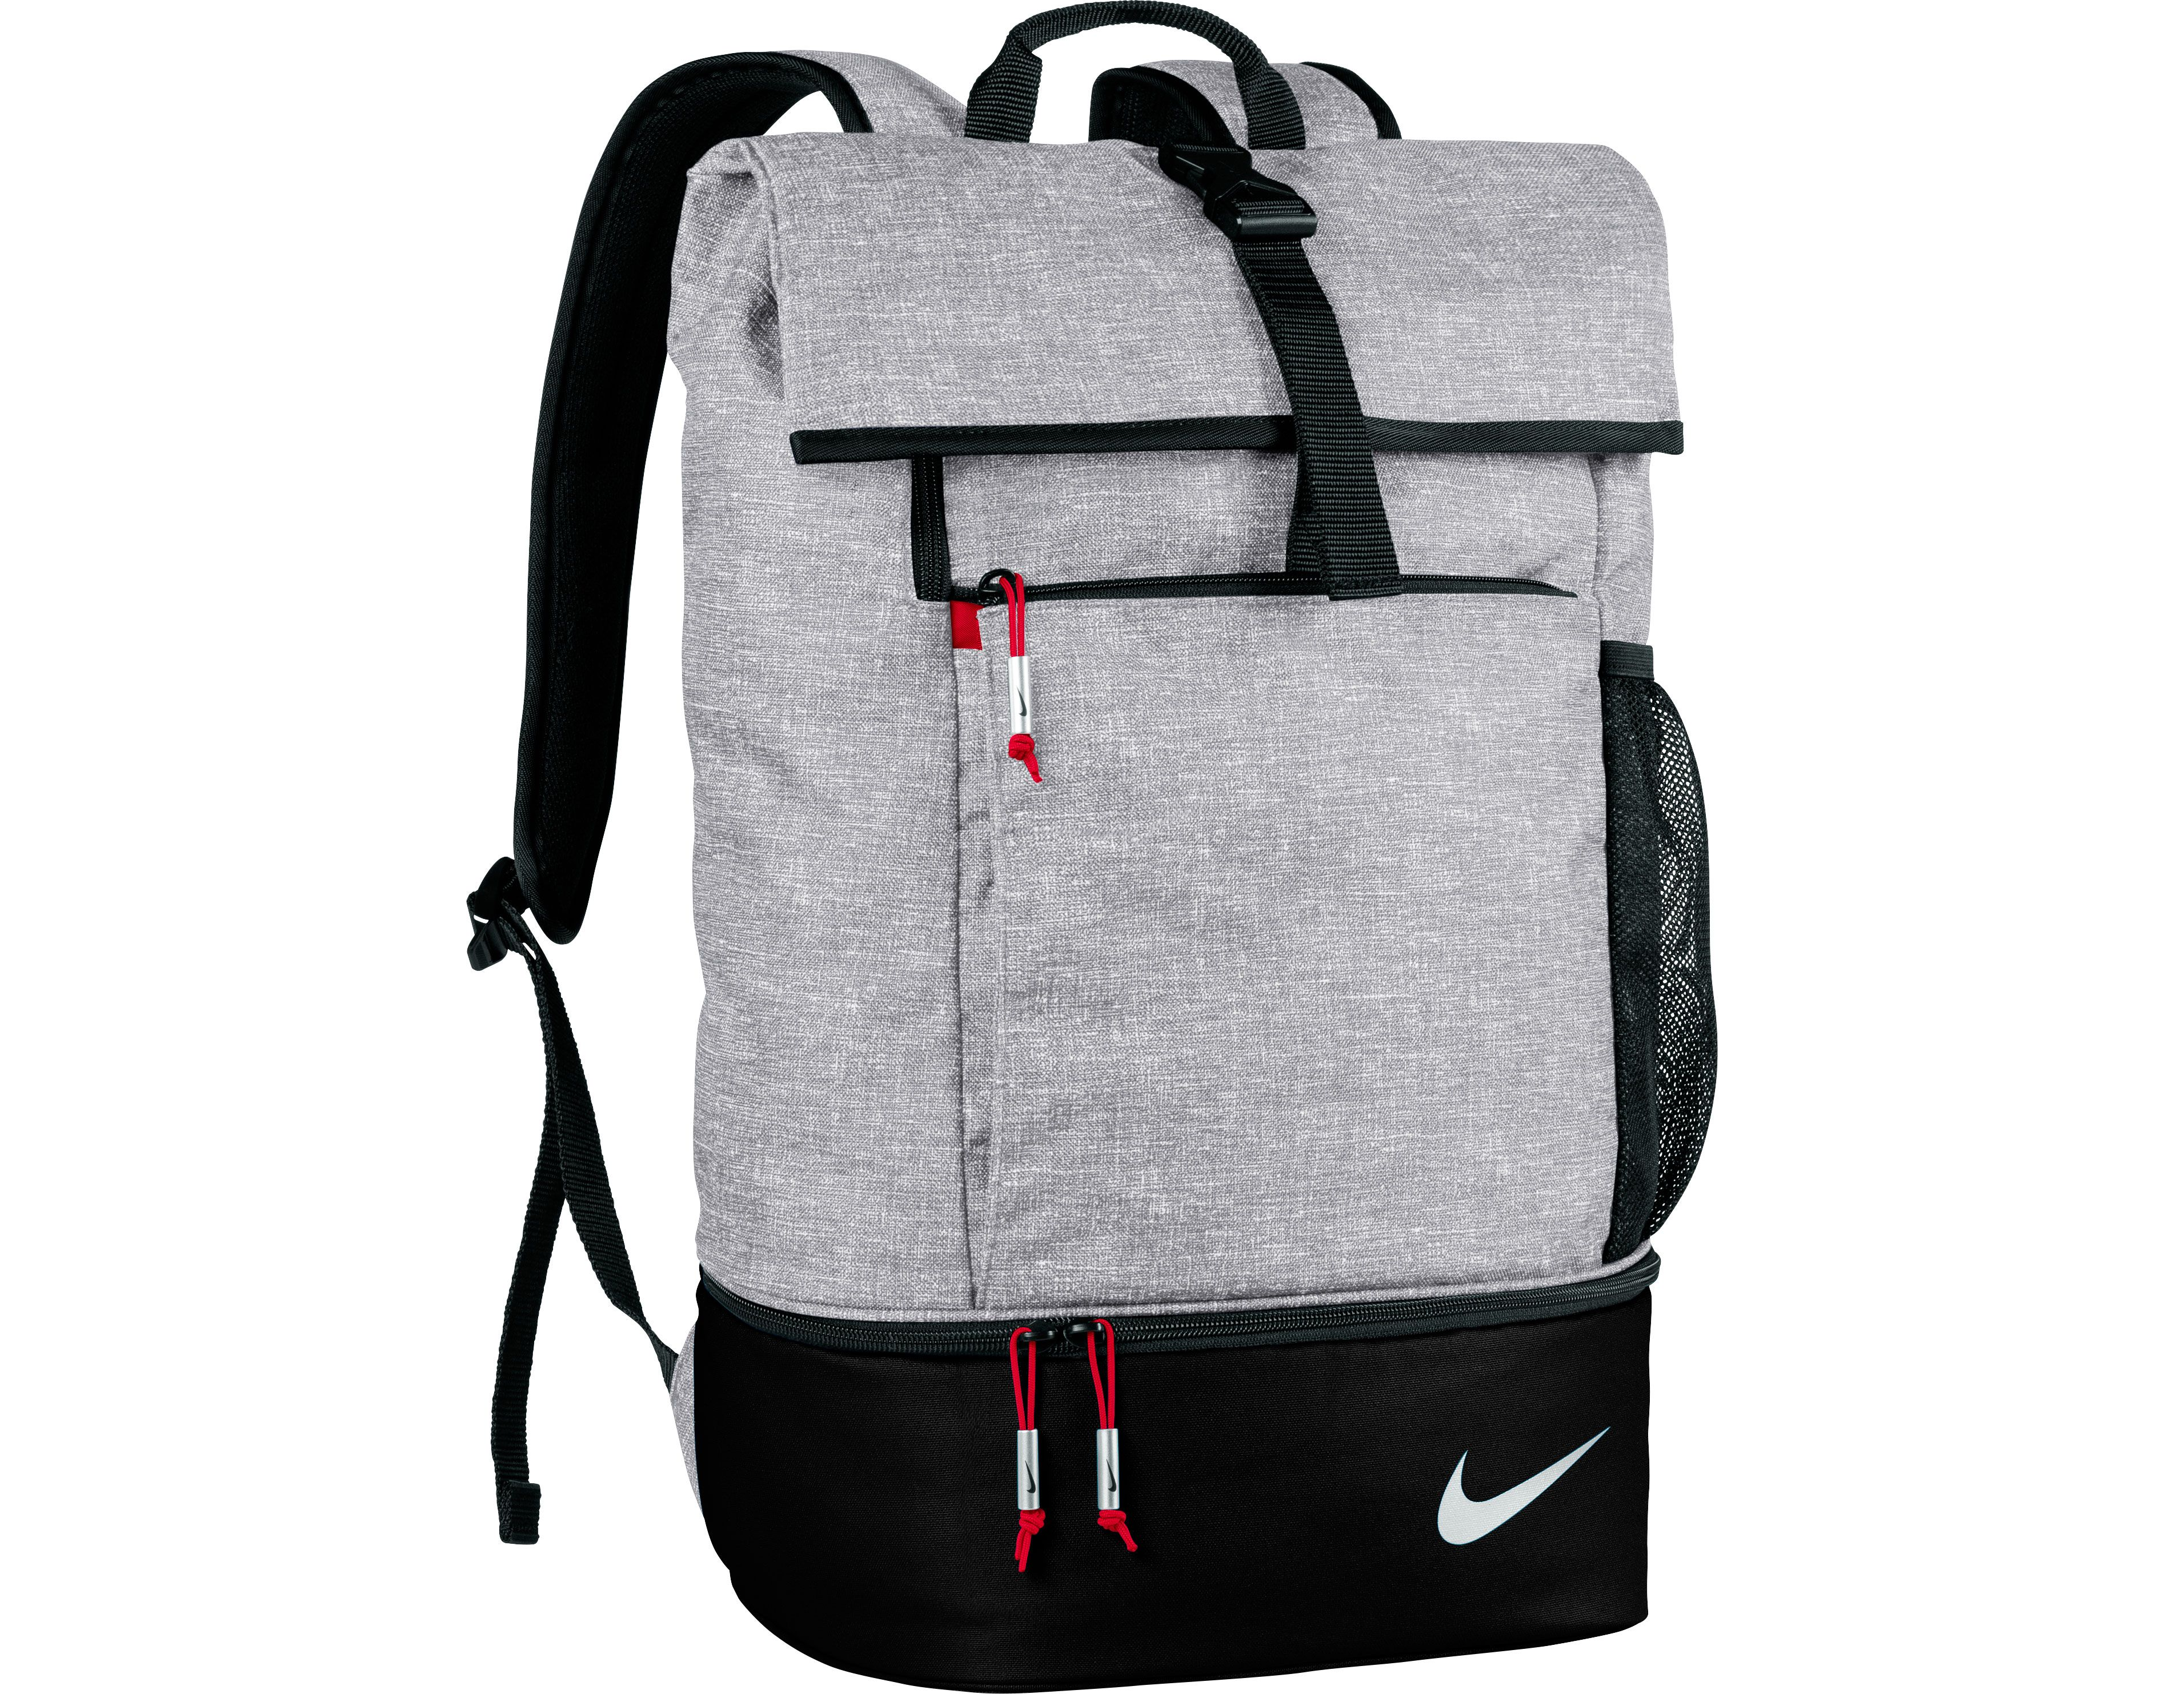 eda4ae5b94 Check out what has for your days on and off the golf course   Silver Black Gym Red Nike Ladies Men s Sport Golf Backpack